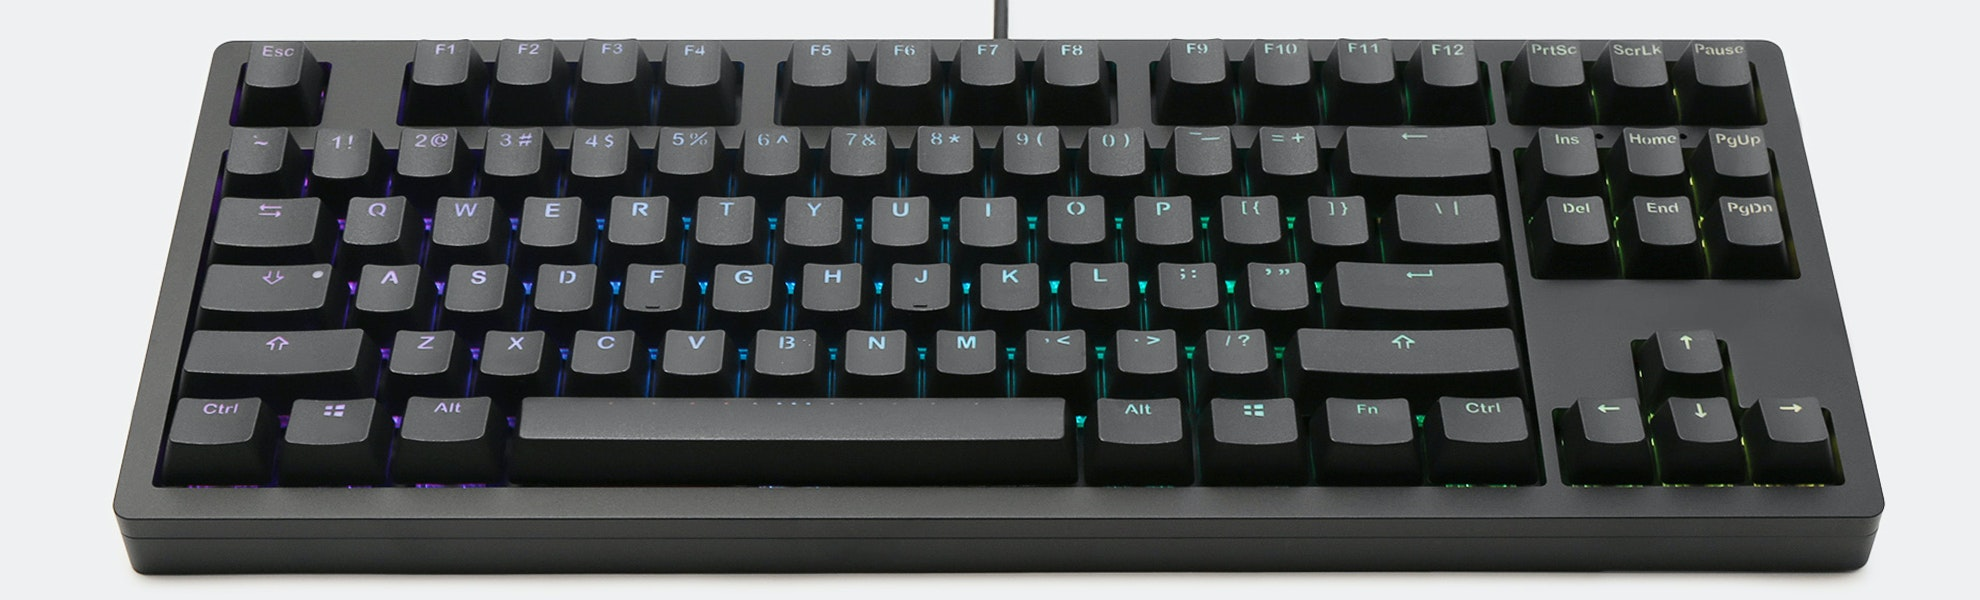 IKBC MF87 v.2 RGB Mechanical Keyboard